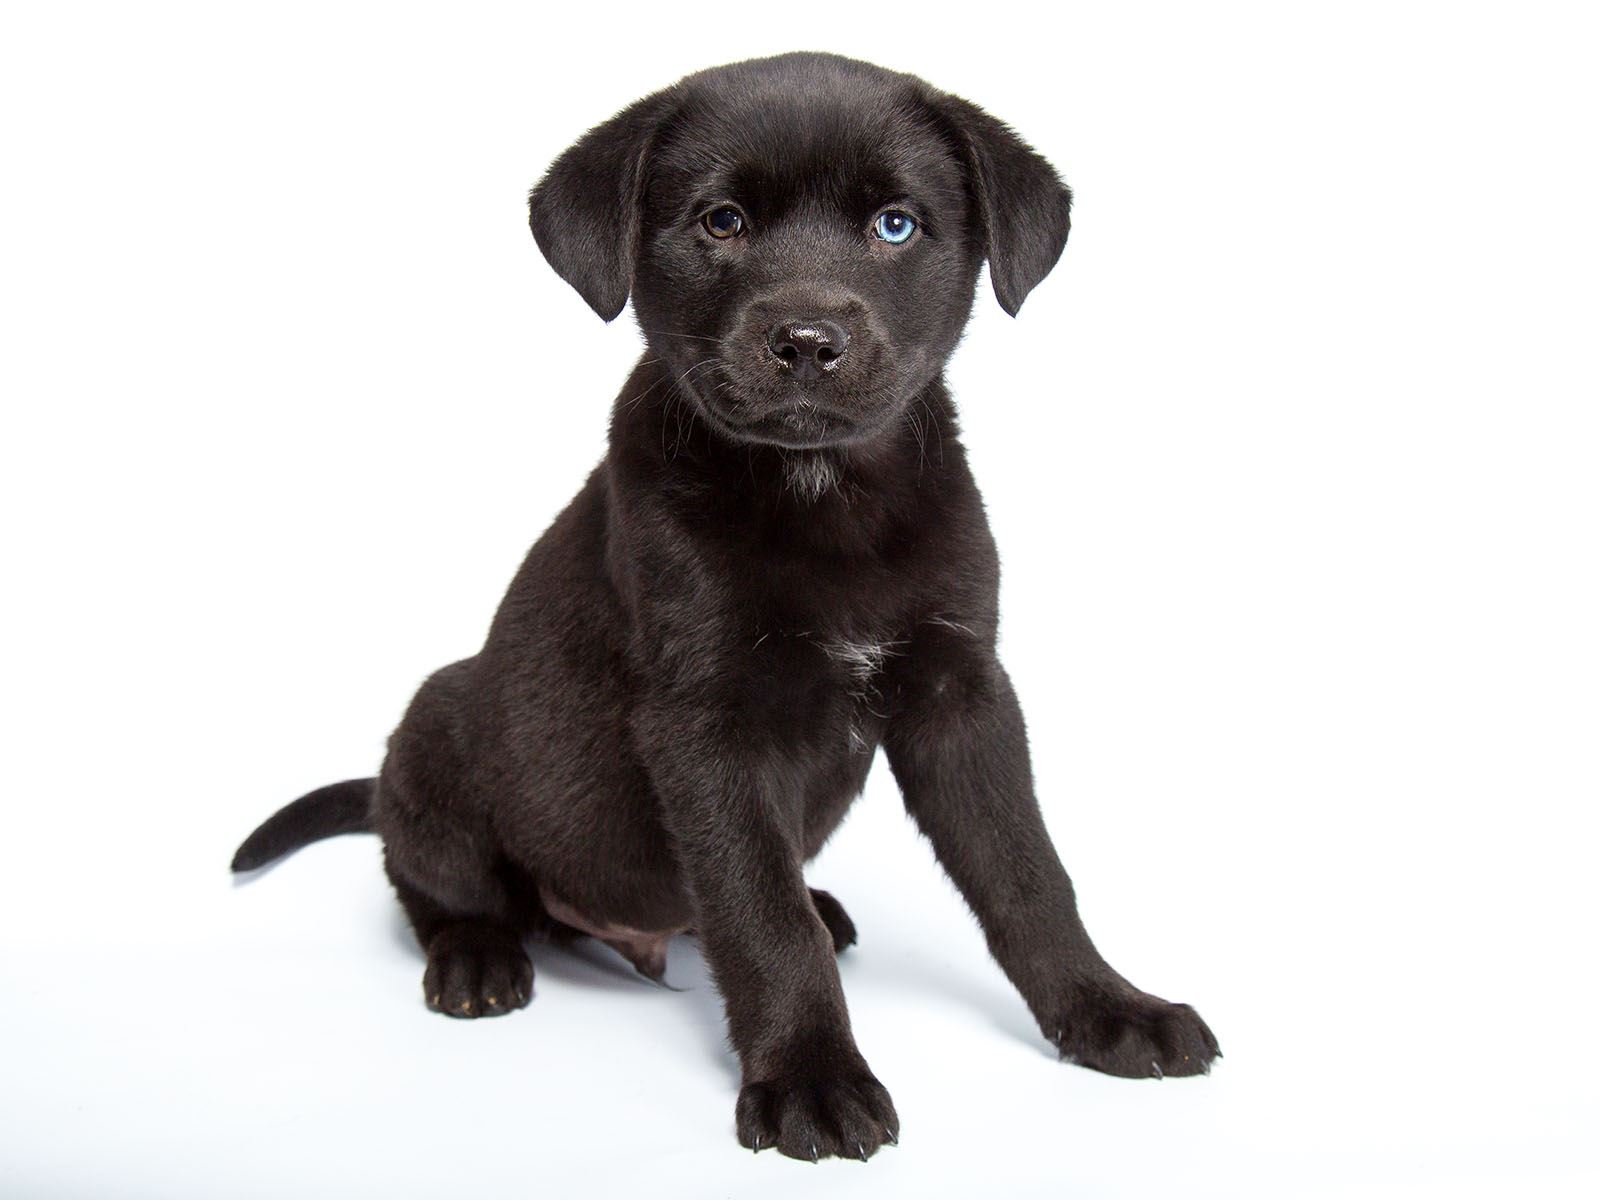 A photo of a black mixed breed puppy.